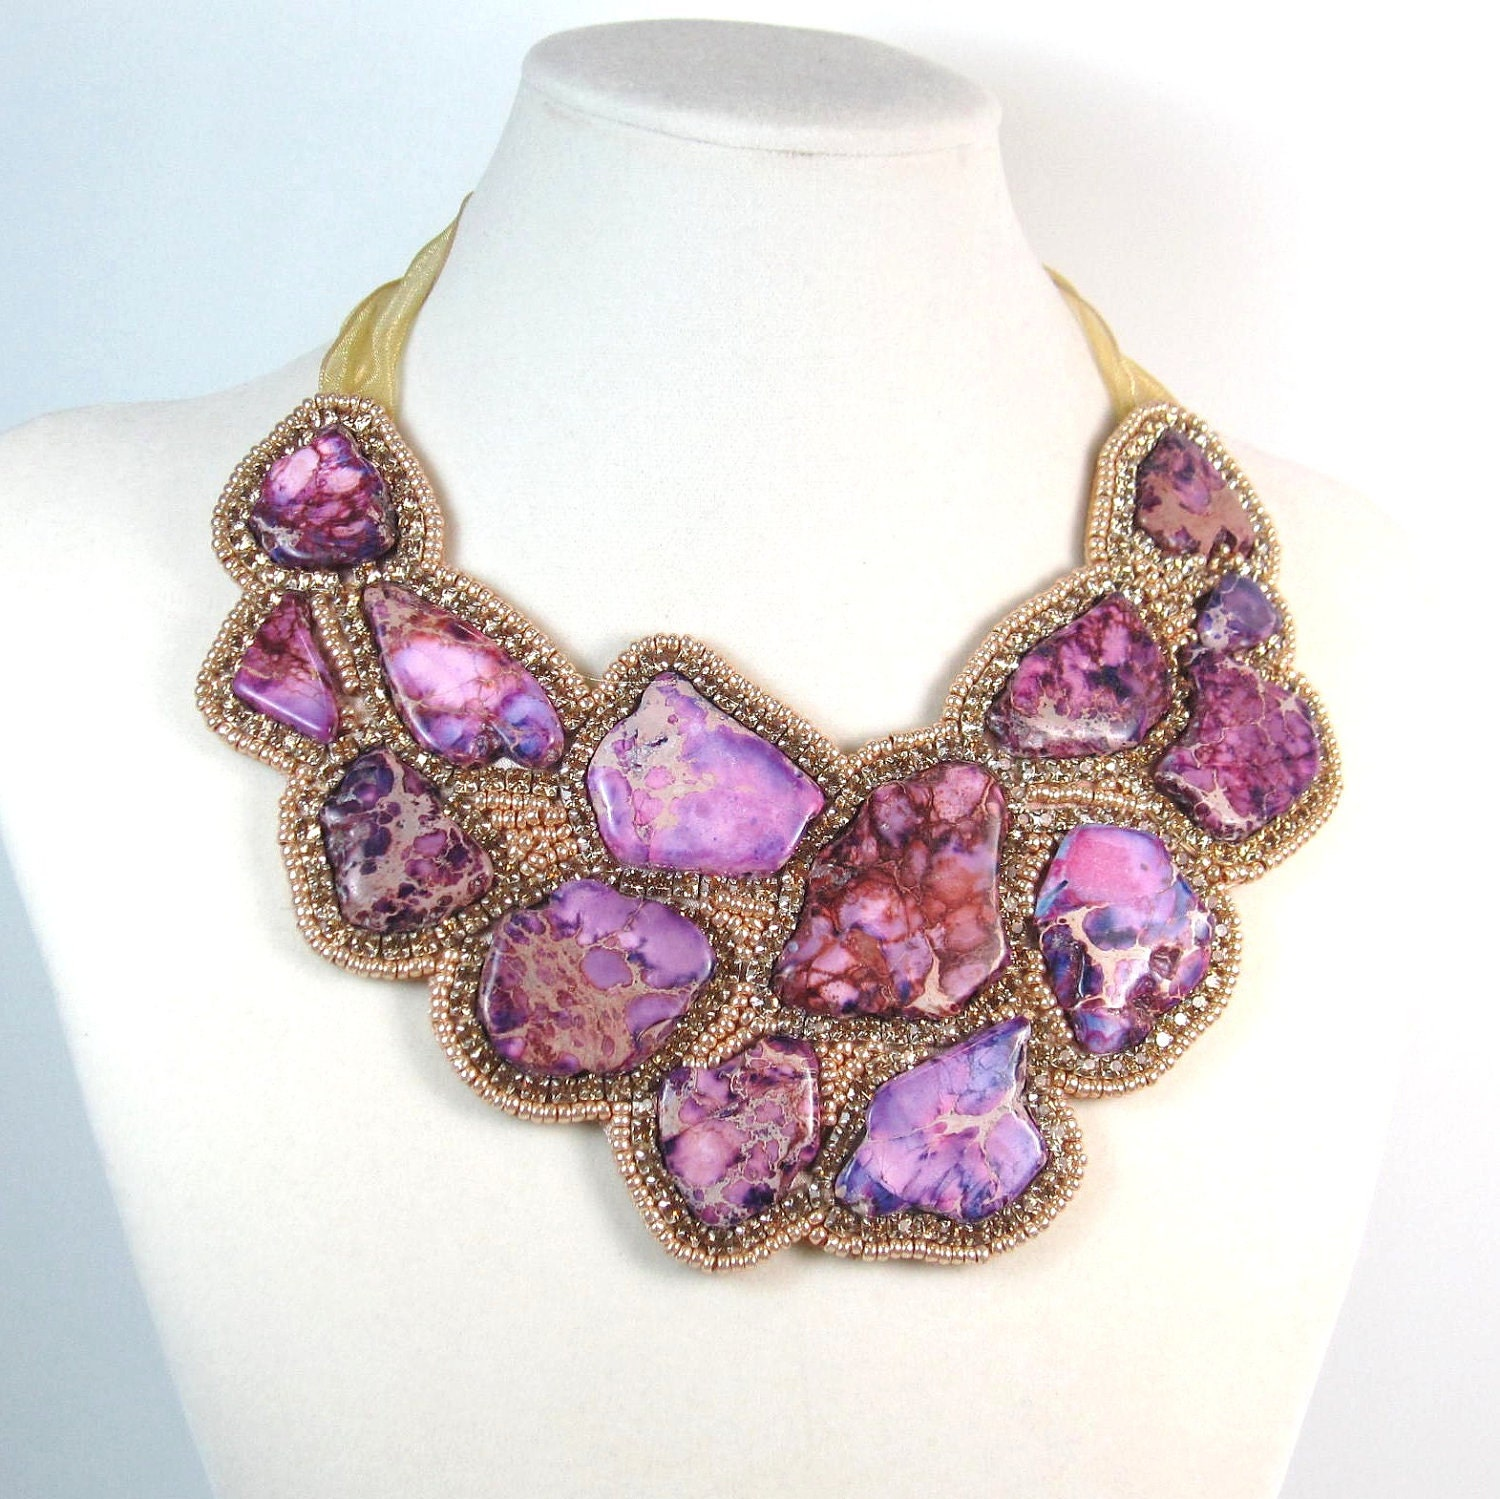 Purple Bib Statement Piece Necklace for Women sold by DGSCompany. Shop more products from DGSCompany on Storenvy, the home of independent small businesses all over the world.